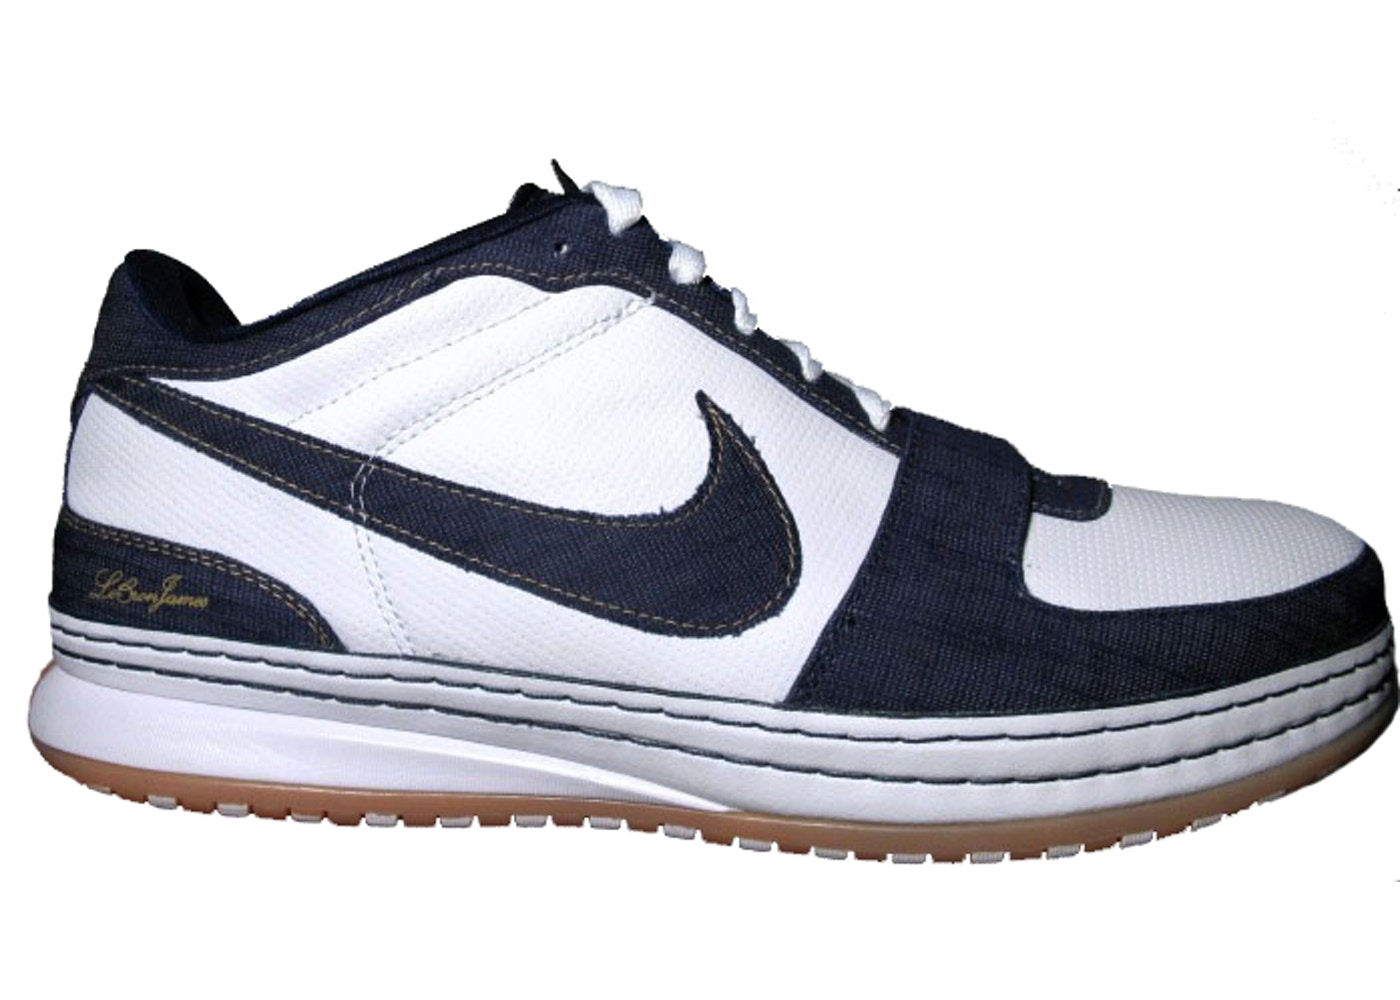 700a1f4b7a3 Buy Nike LeBron 6 Shoes   Deadstock Sneakers